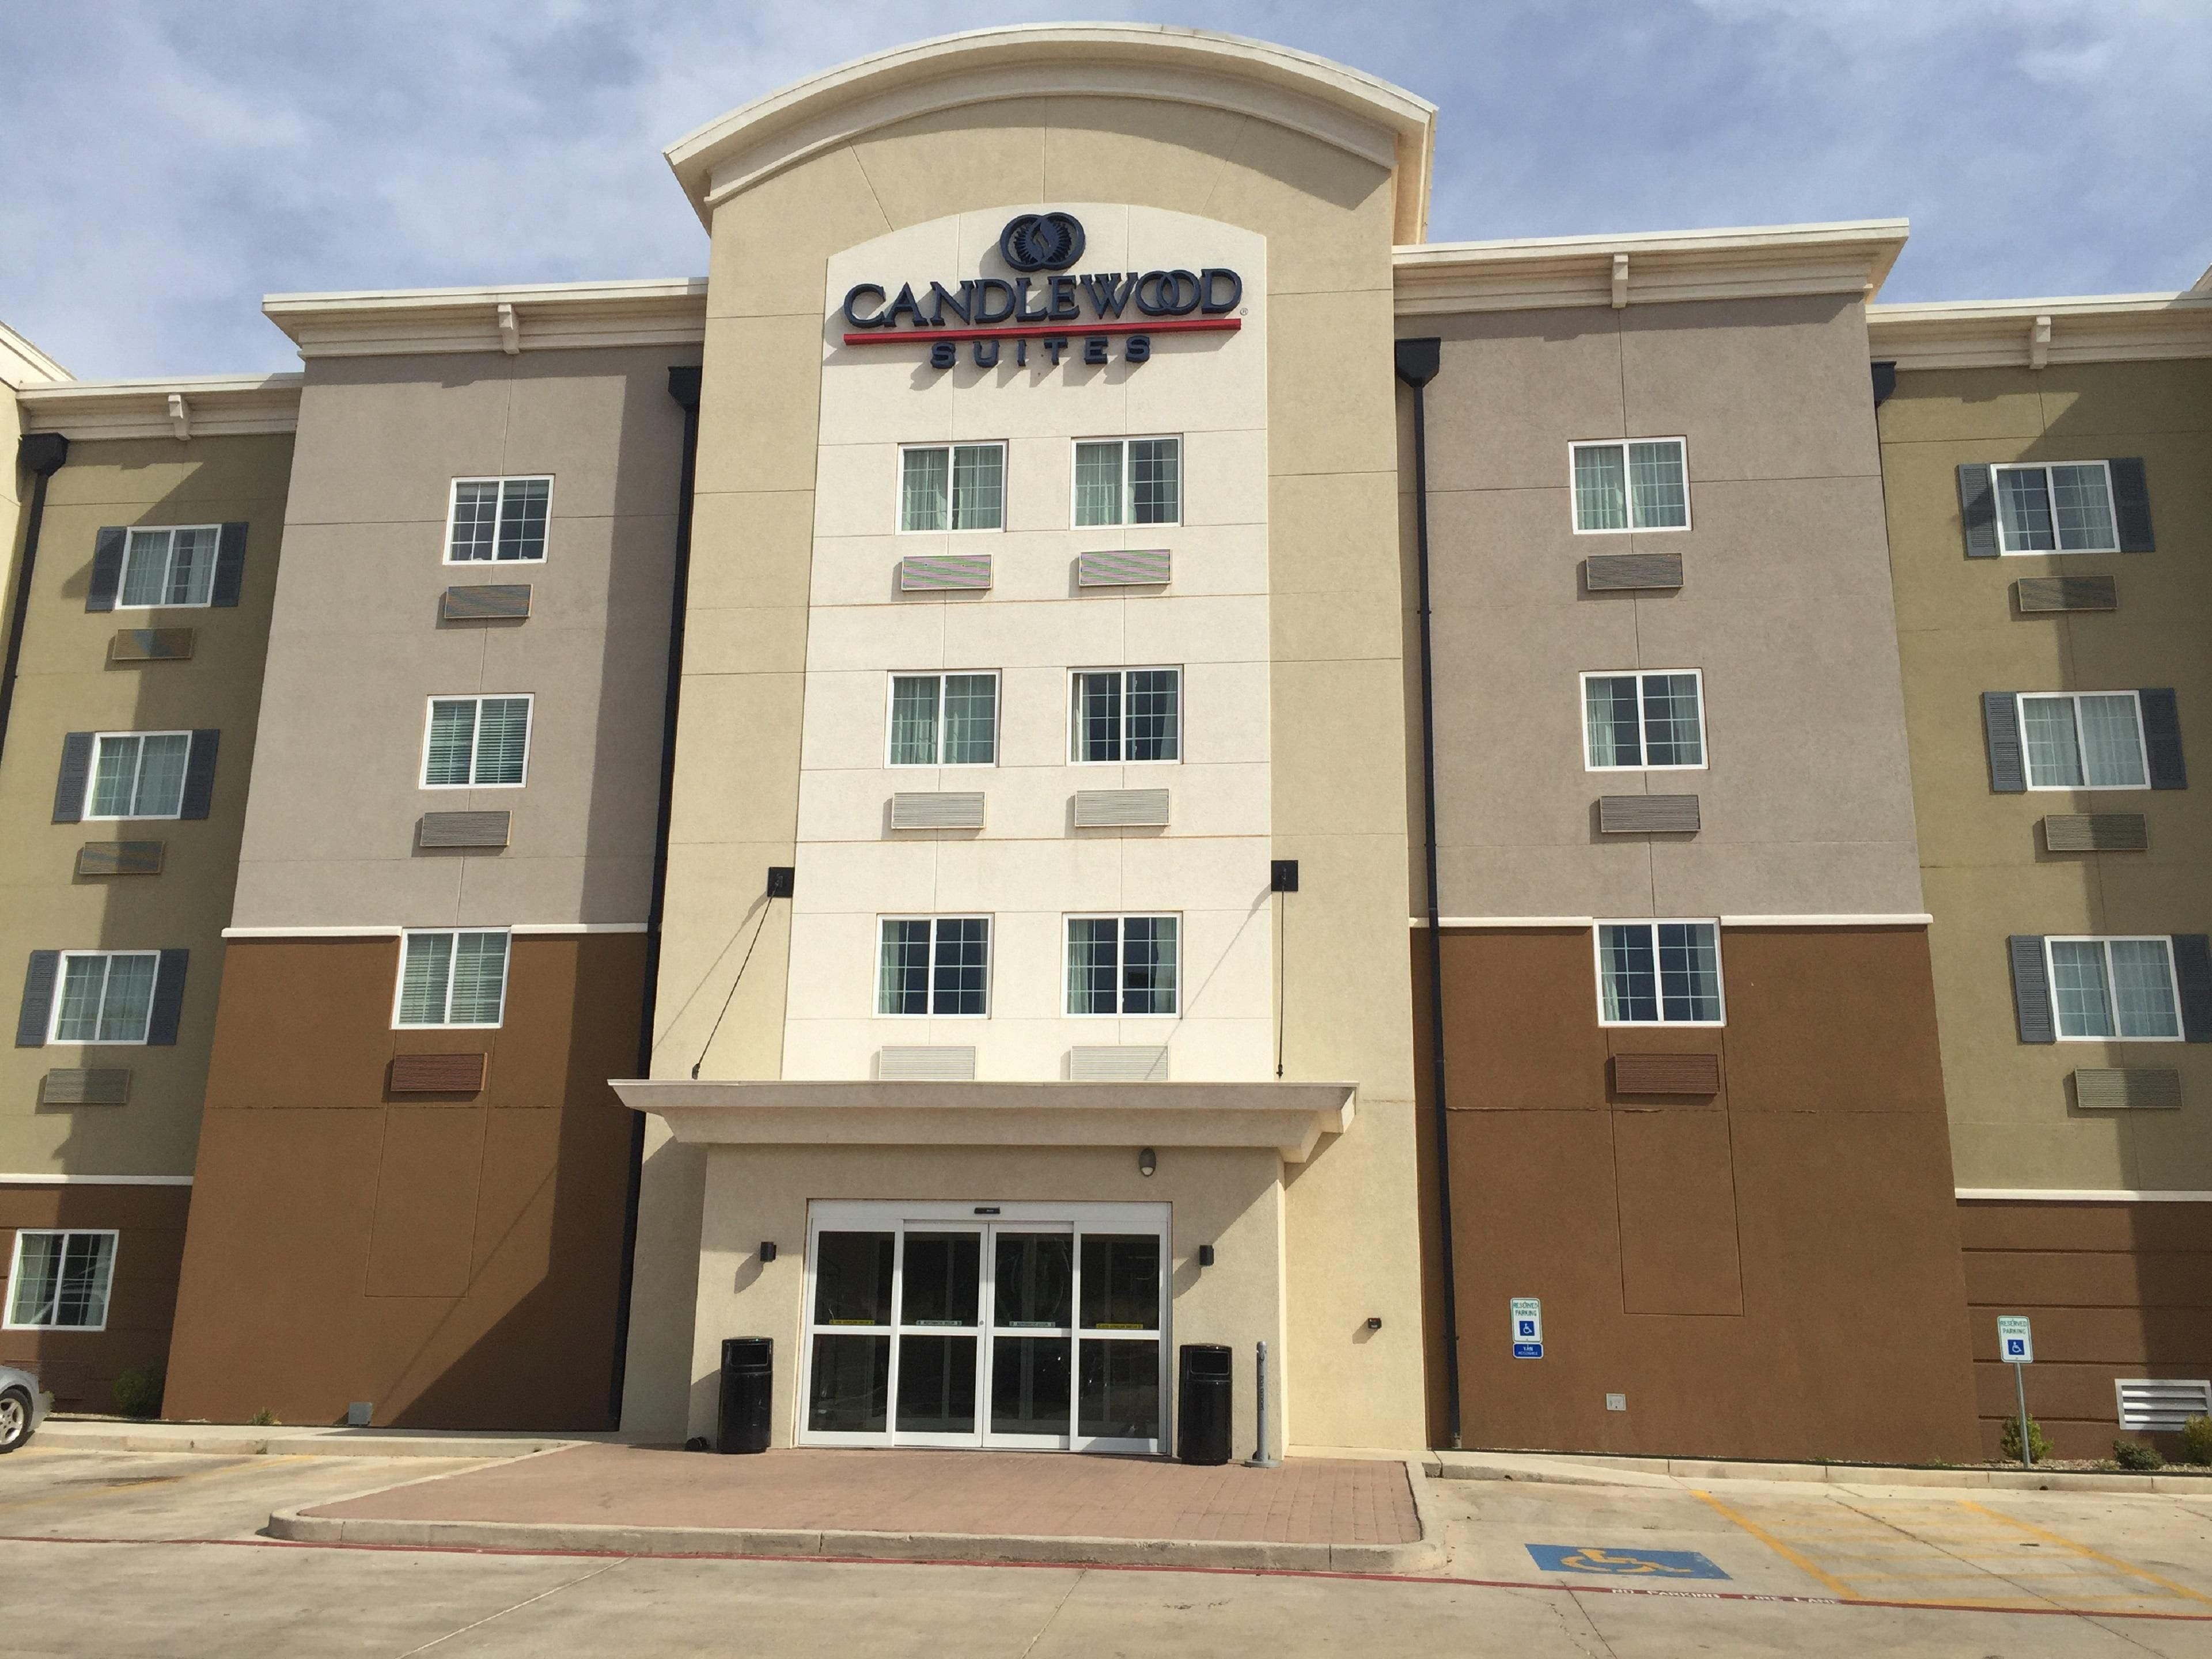 Woodward Hotels Candlewood Suites